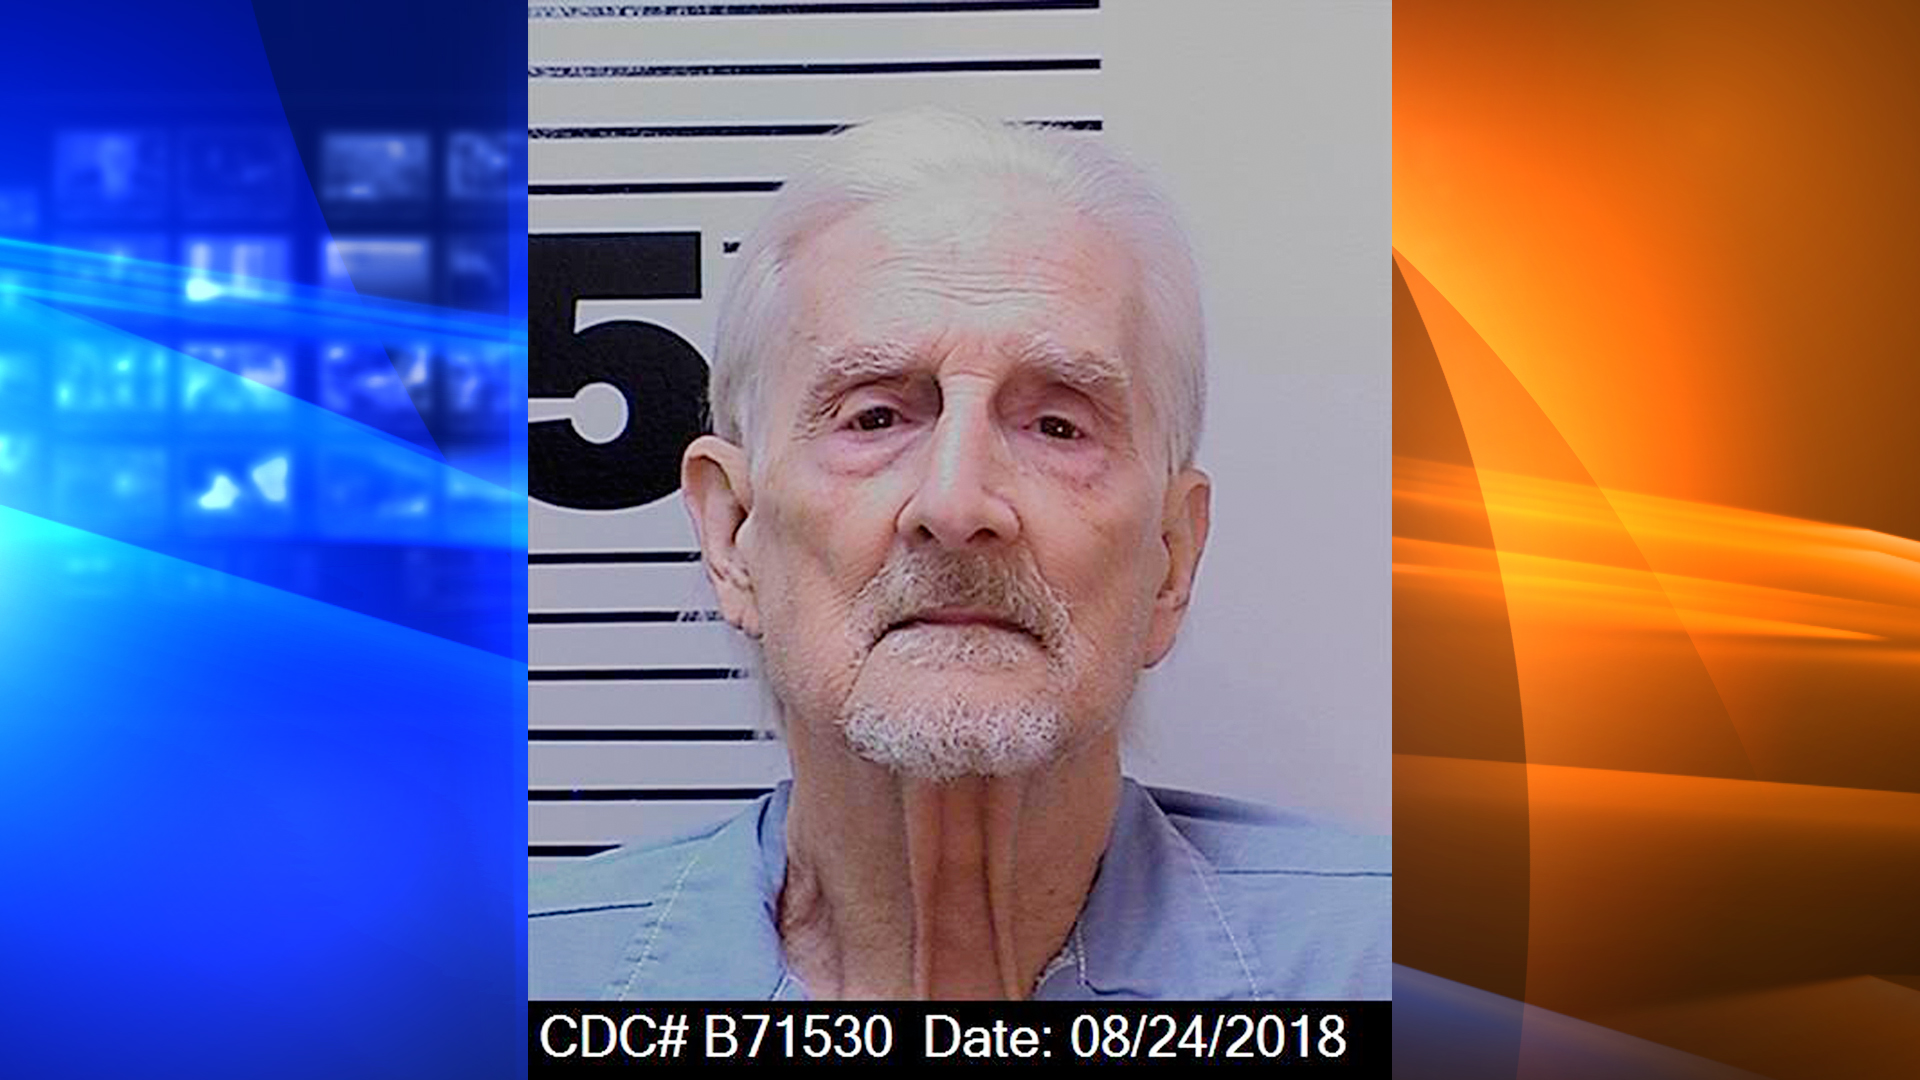 This photo provided by the California Dept. of Corrections and Rehabilitation shows Richard Allen Benson on Aug. 24, 2018.